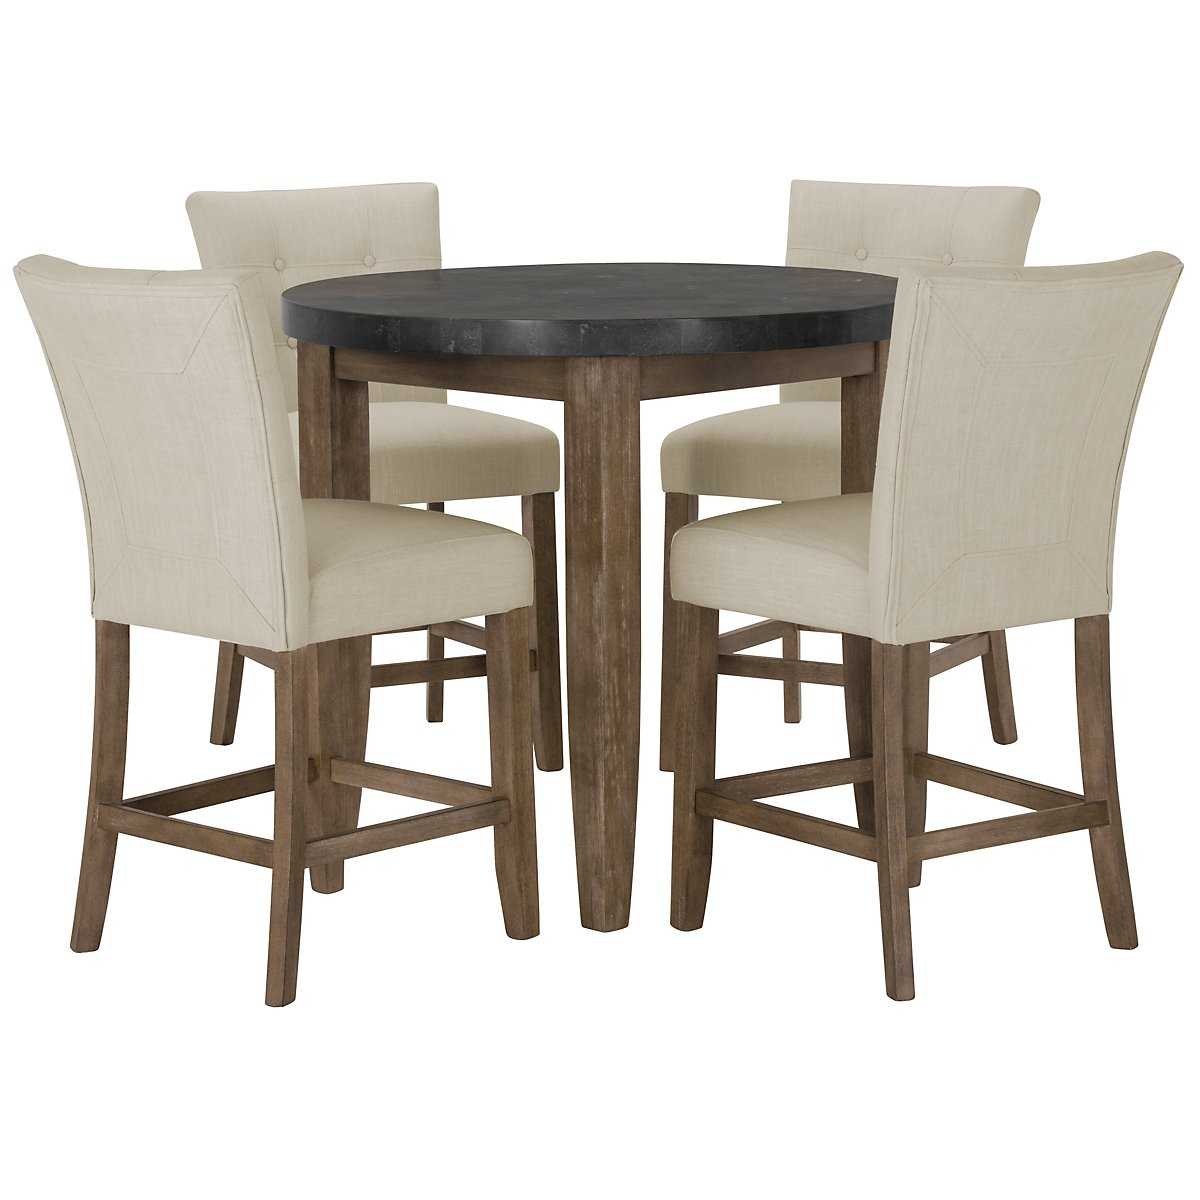 High Round Dining Table: City Furniture: Emmett White Round High Dining Table & 2